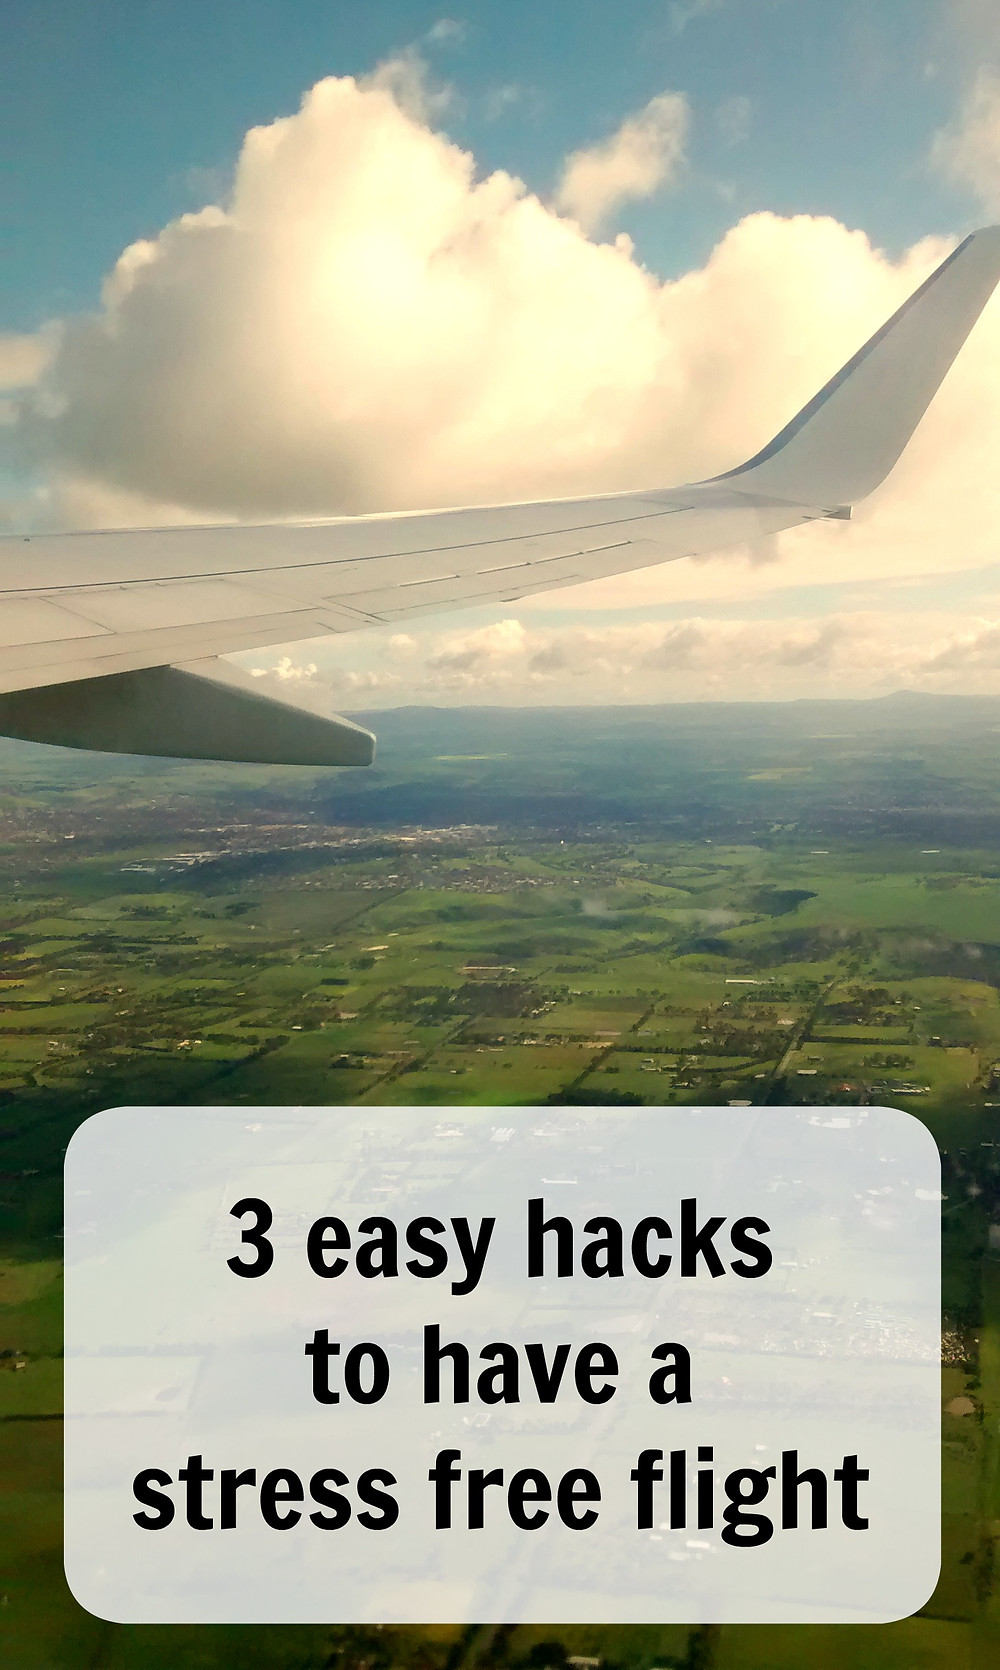 3 easy hacks to have a stress free flight